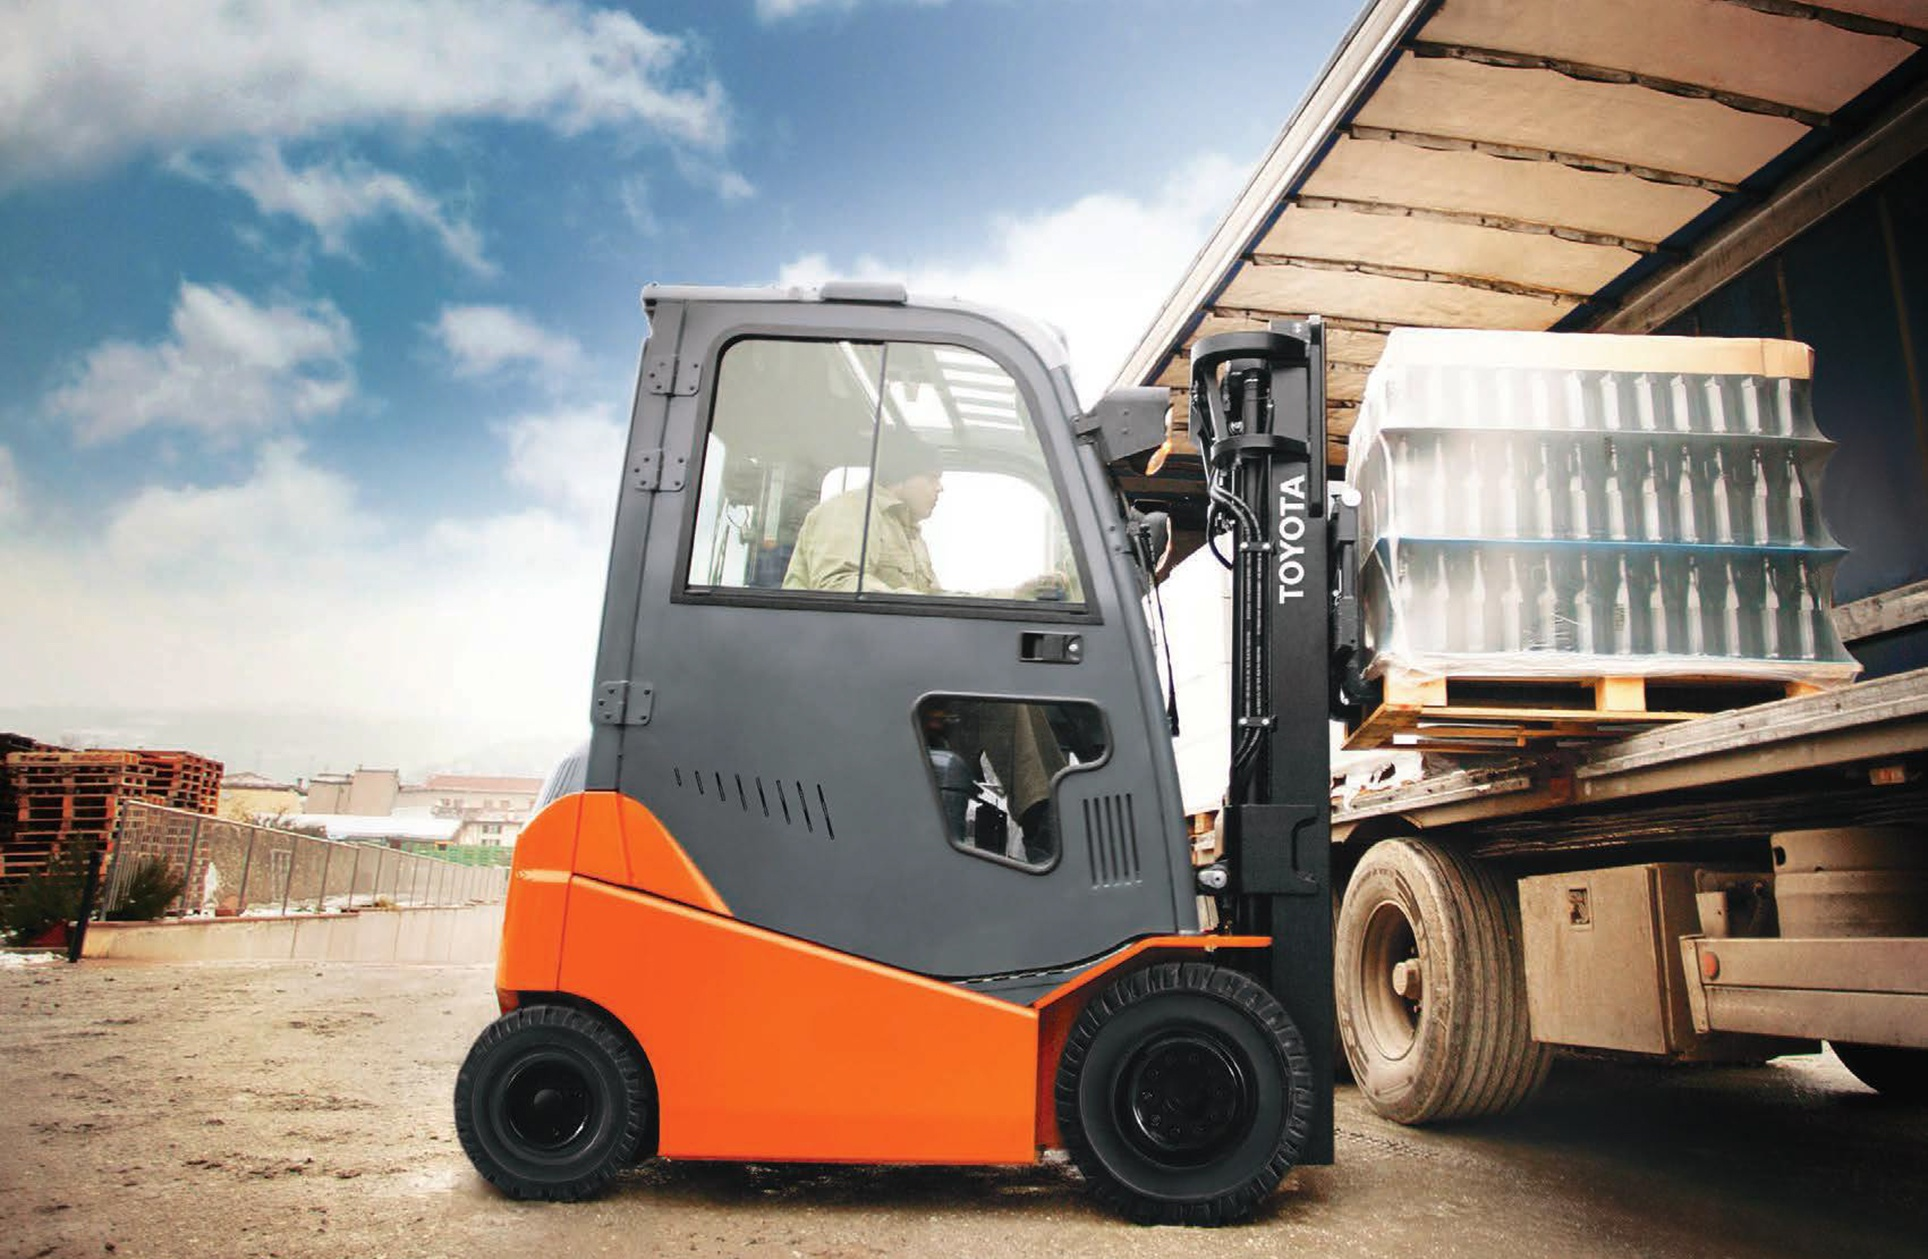 Electric forklift for outdoor use.